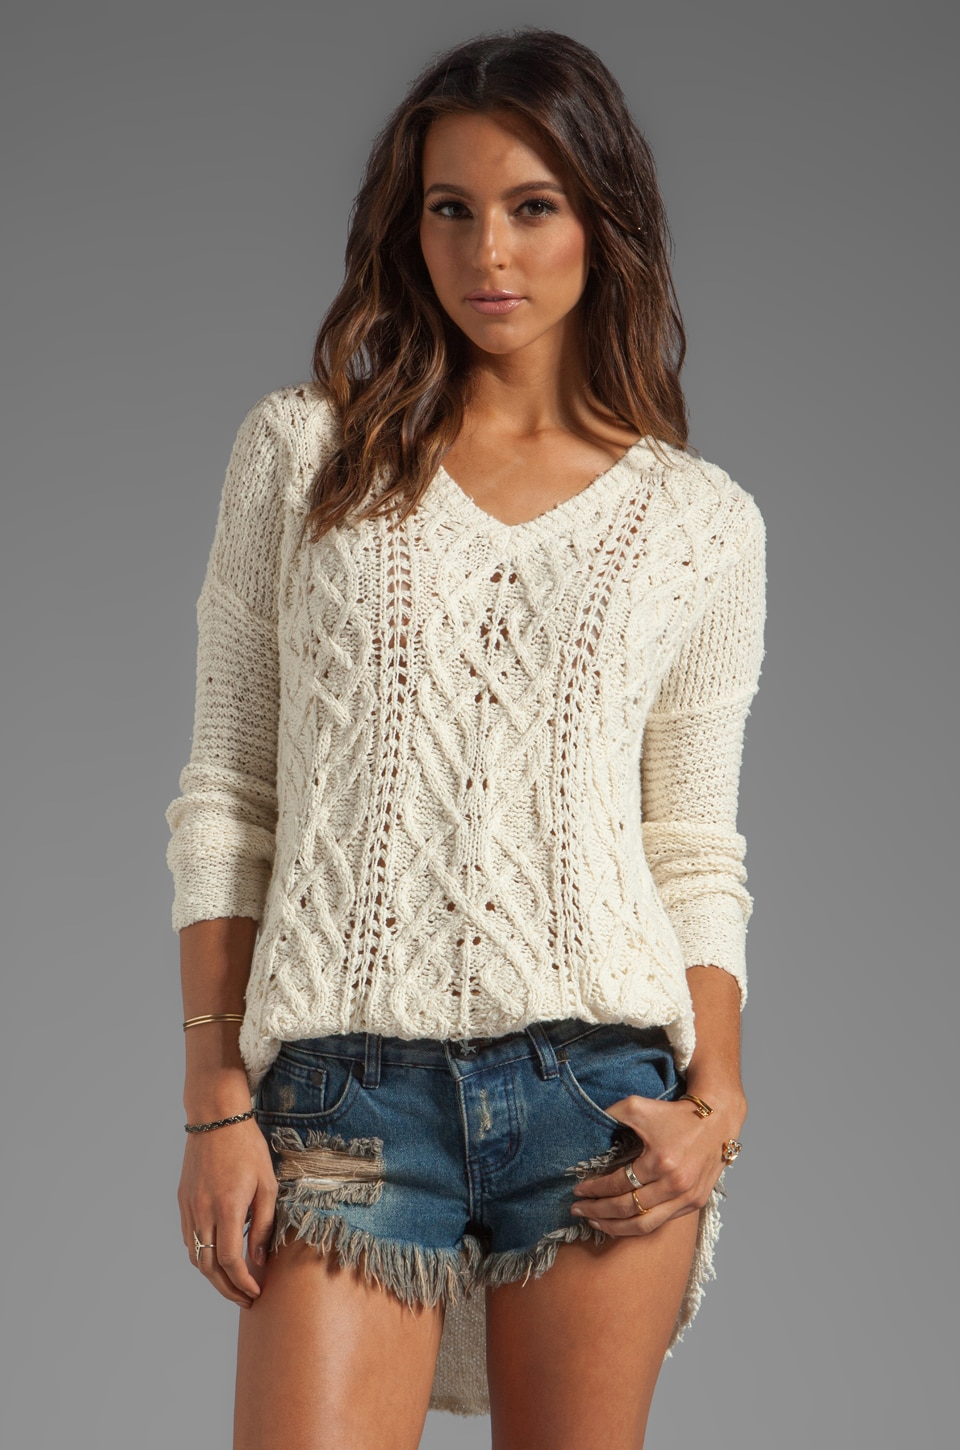 Free People Cross My Heart Sweater in Ivory